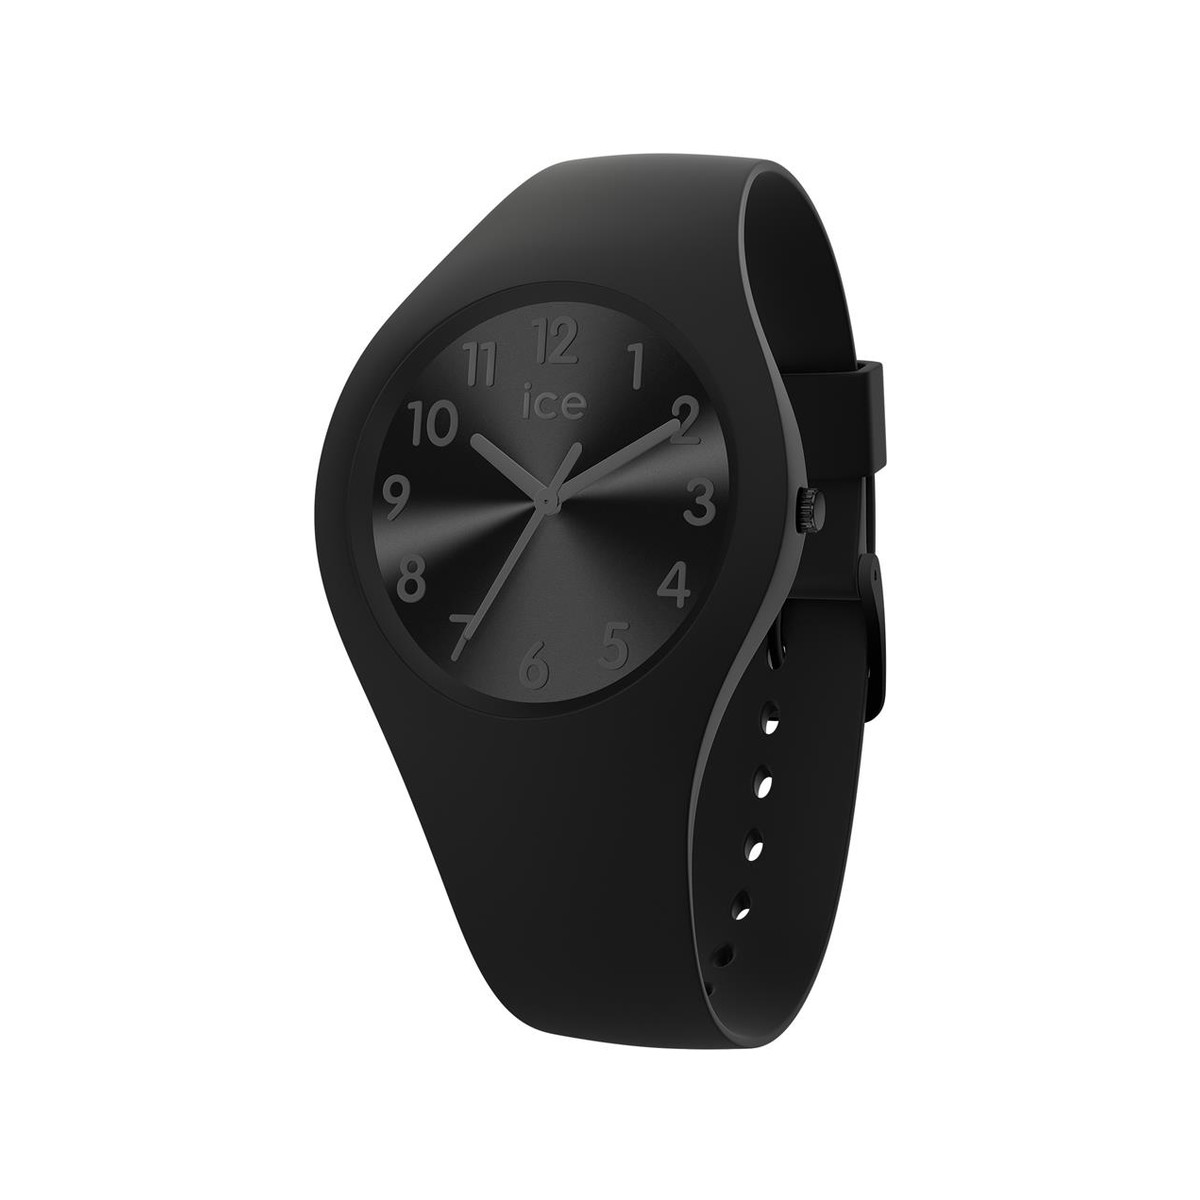 Montre Ice Watch femme small silicone noir